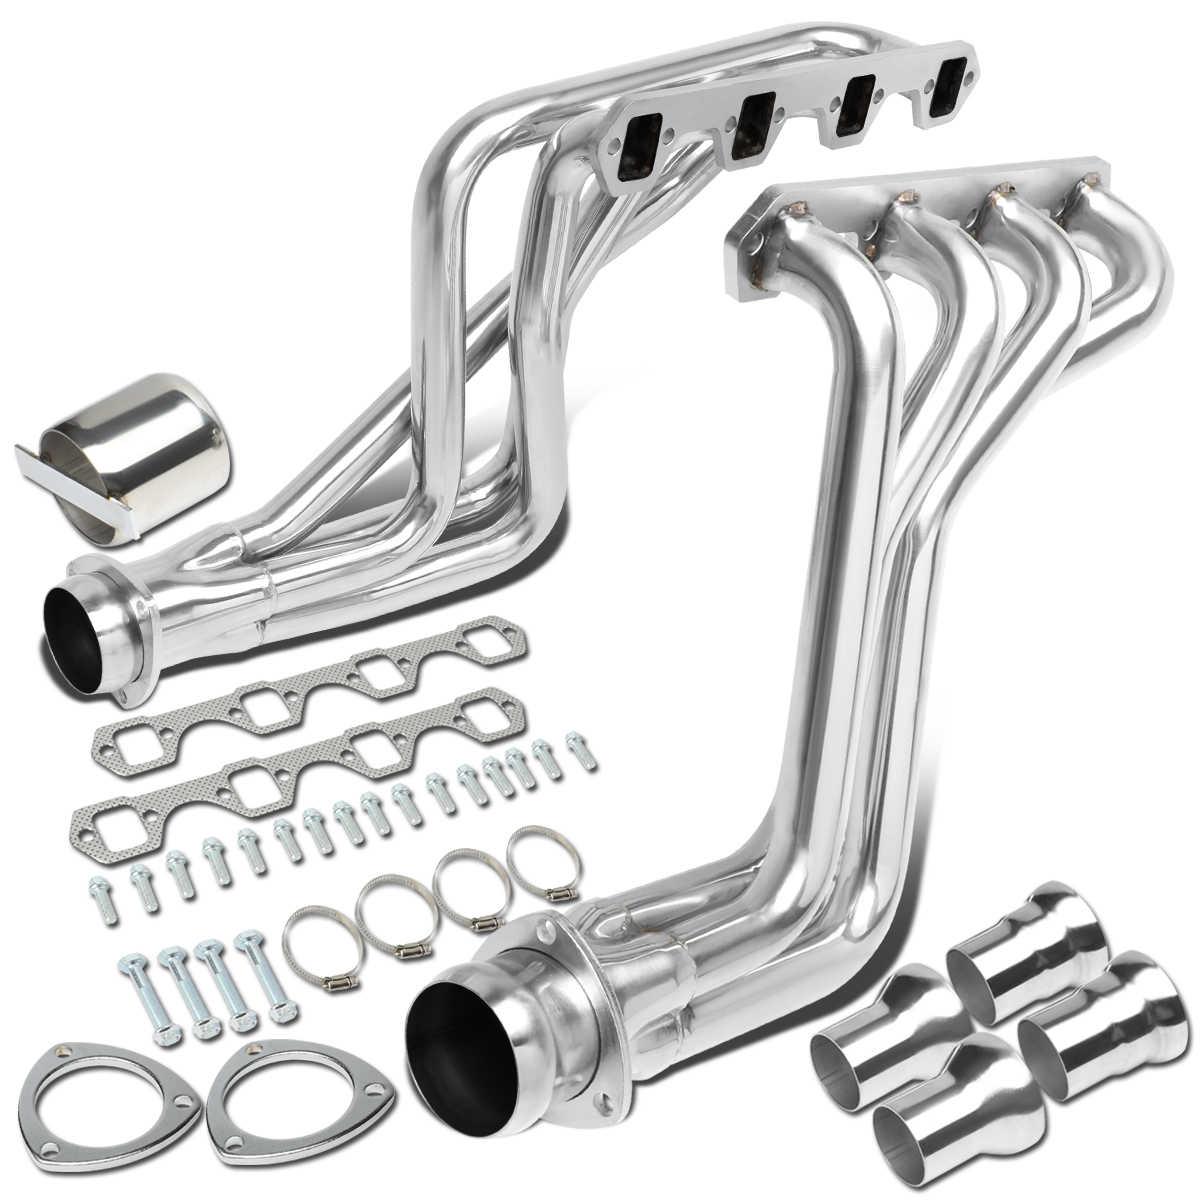 FOR 1980-1996 FORD F100-F350 BRONCO 5.0L V8 EXHAUST MANIFOLD HEADER+COLLECTORS